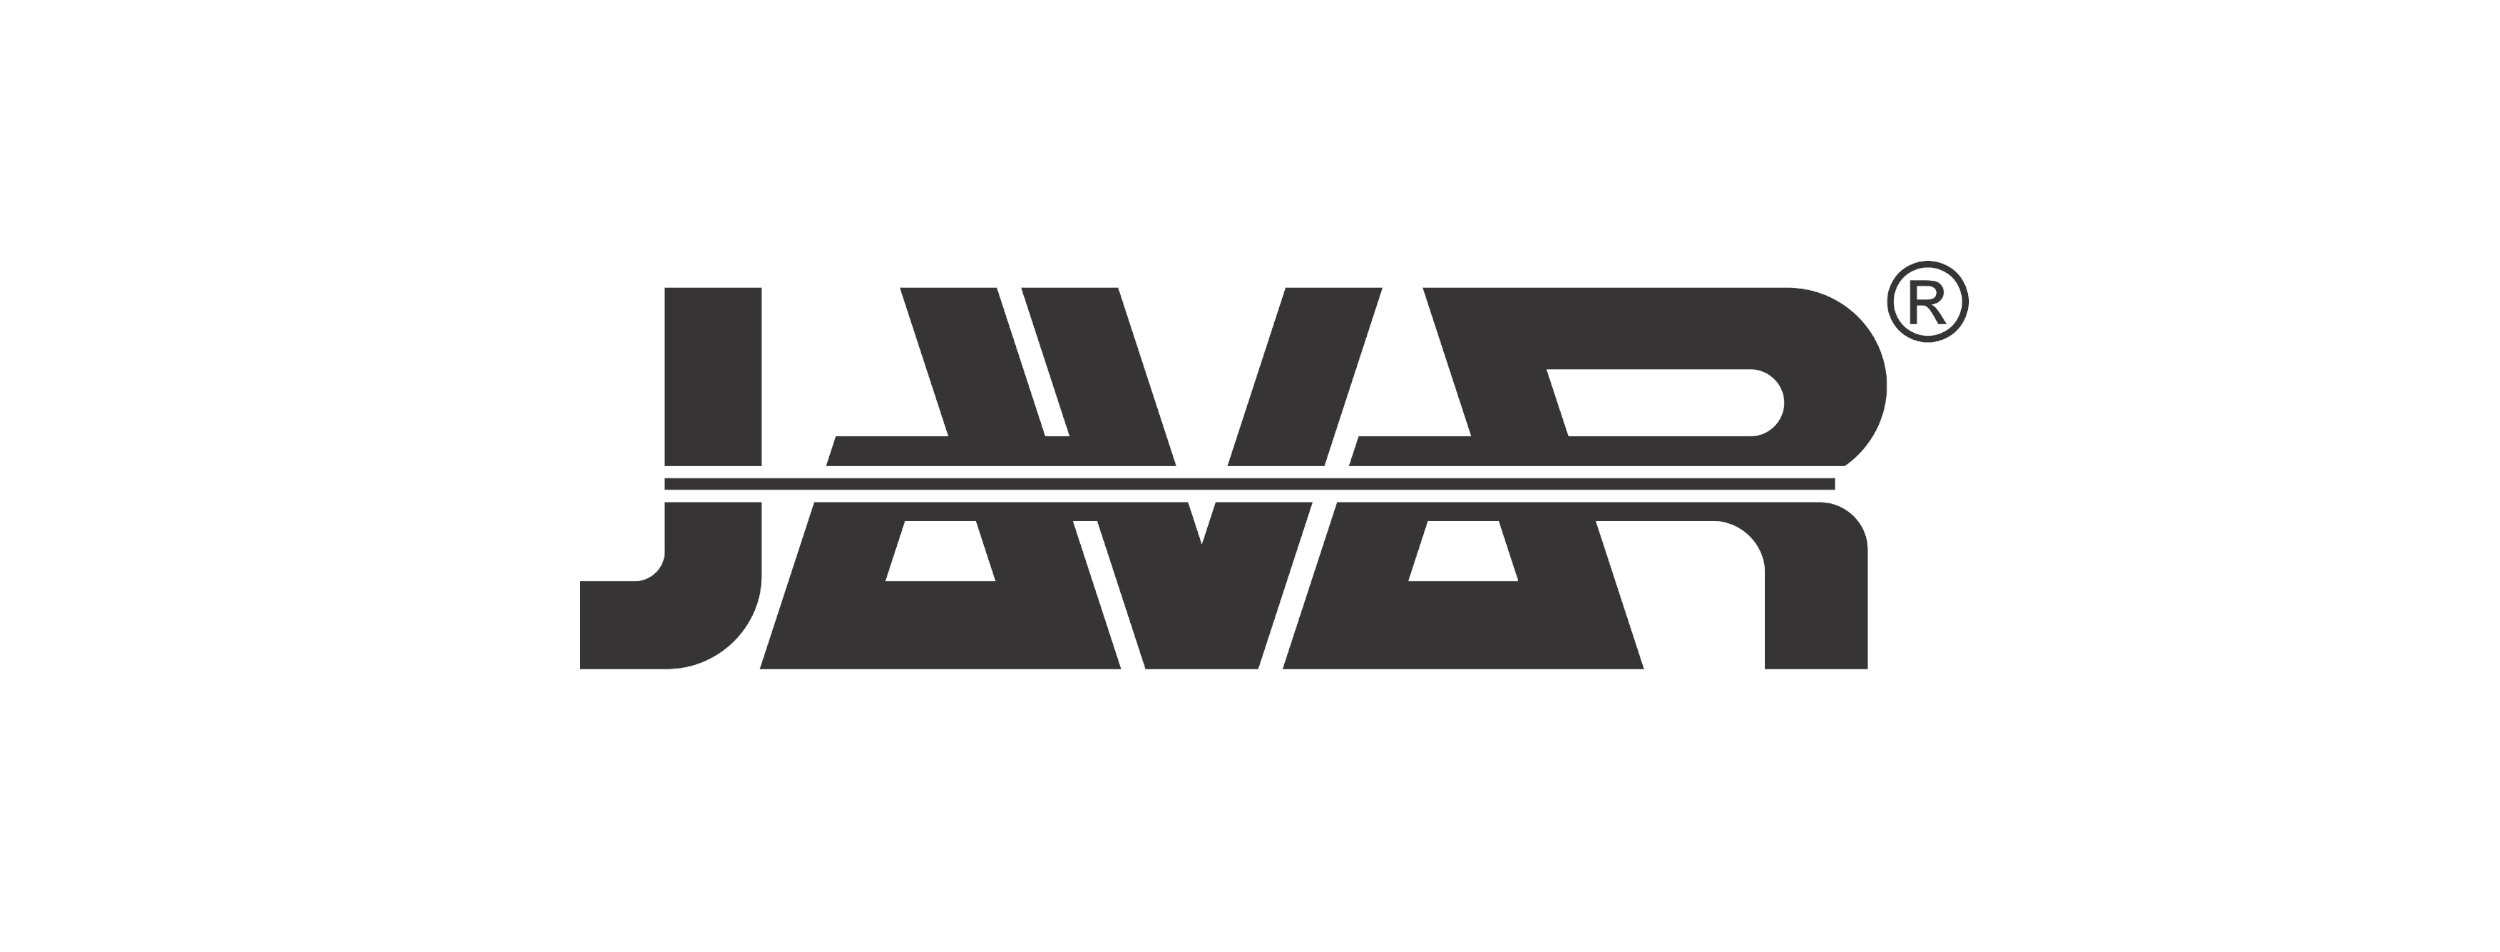 About the Company - JAVAR is a Colombian-based company focused on industrial kitchen equipment. For more than 30 years, JAVAR has been part of the transformation of the butcher industry in Colombia. Contributing to build products that meet compliance with stricter sanitary standards.